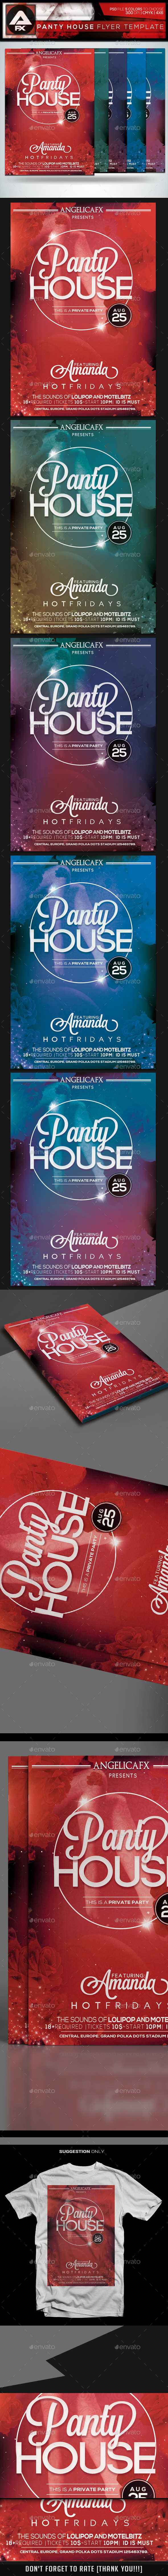 Panty House Flyer Template - Events Flyers